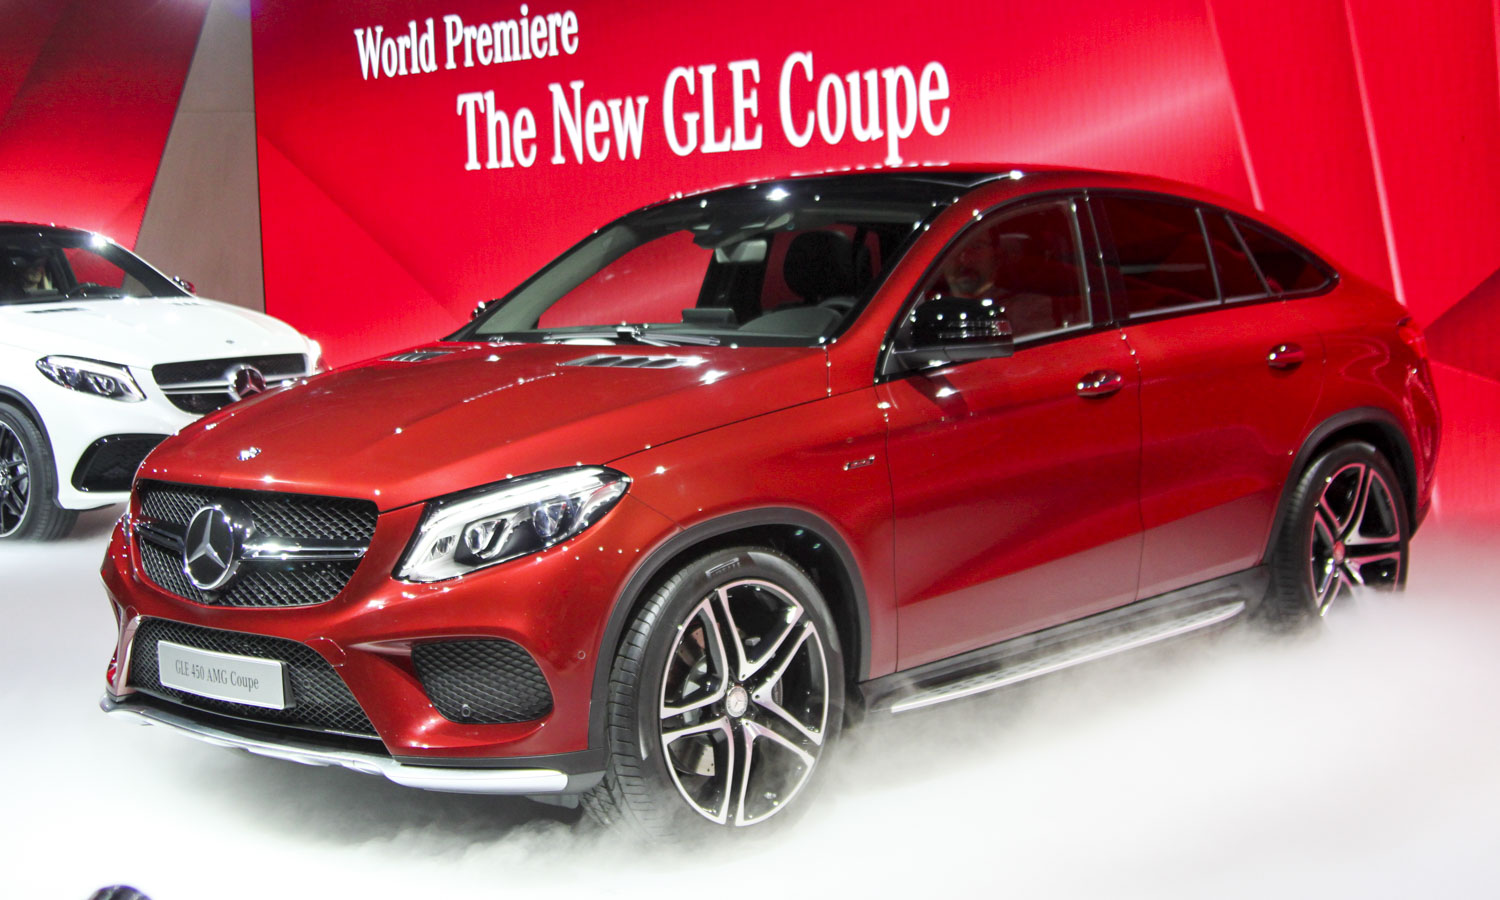 Mercedes-Benz GLE Coupe (c) Perry Stern